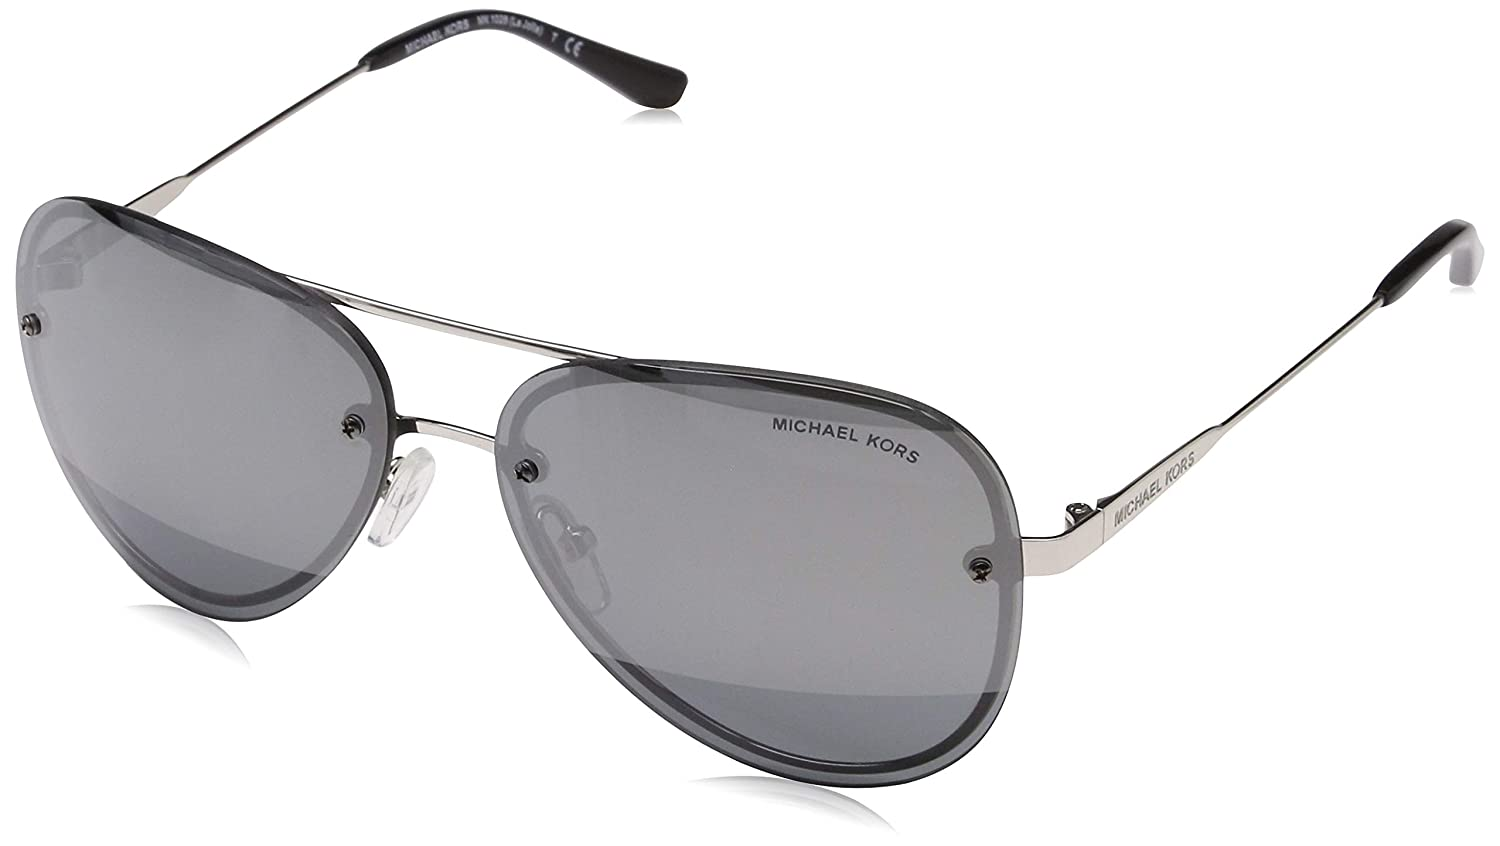 53985c387ffc Michael Kors MK 1026 11181Y SILVER-TONE at Amazon Men s Clothing store